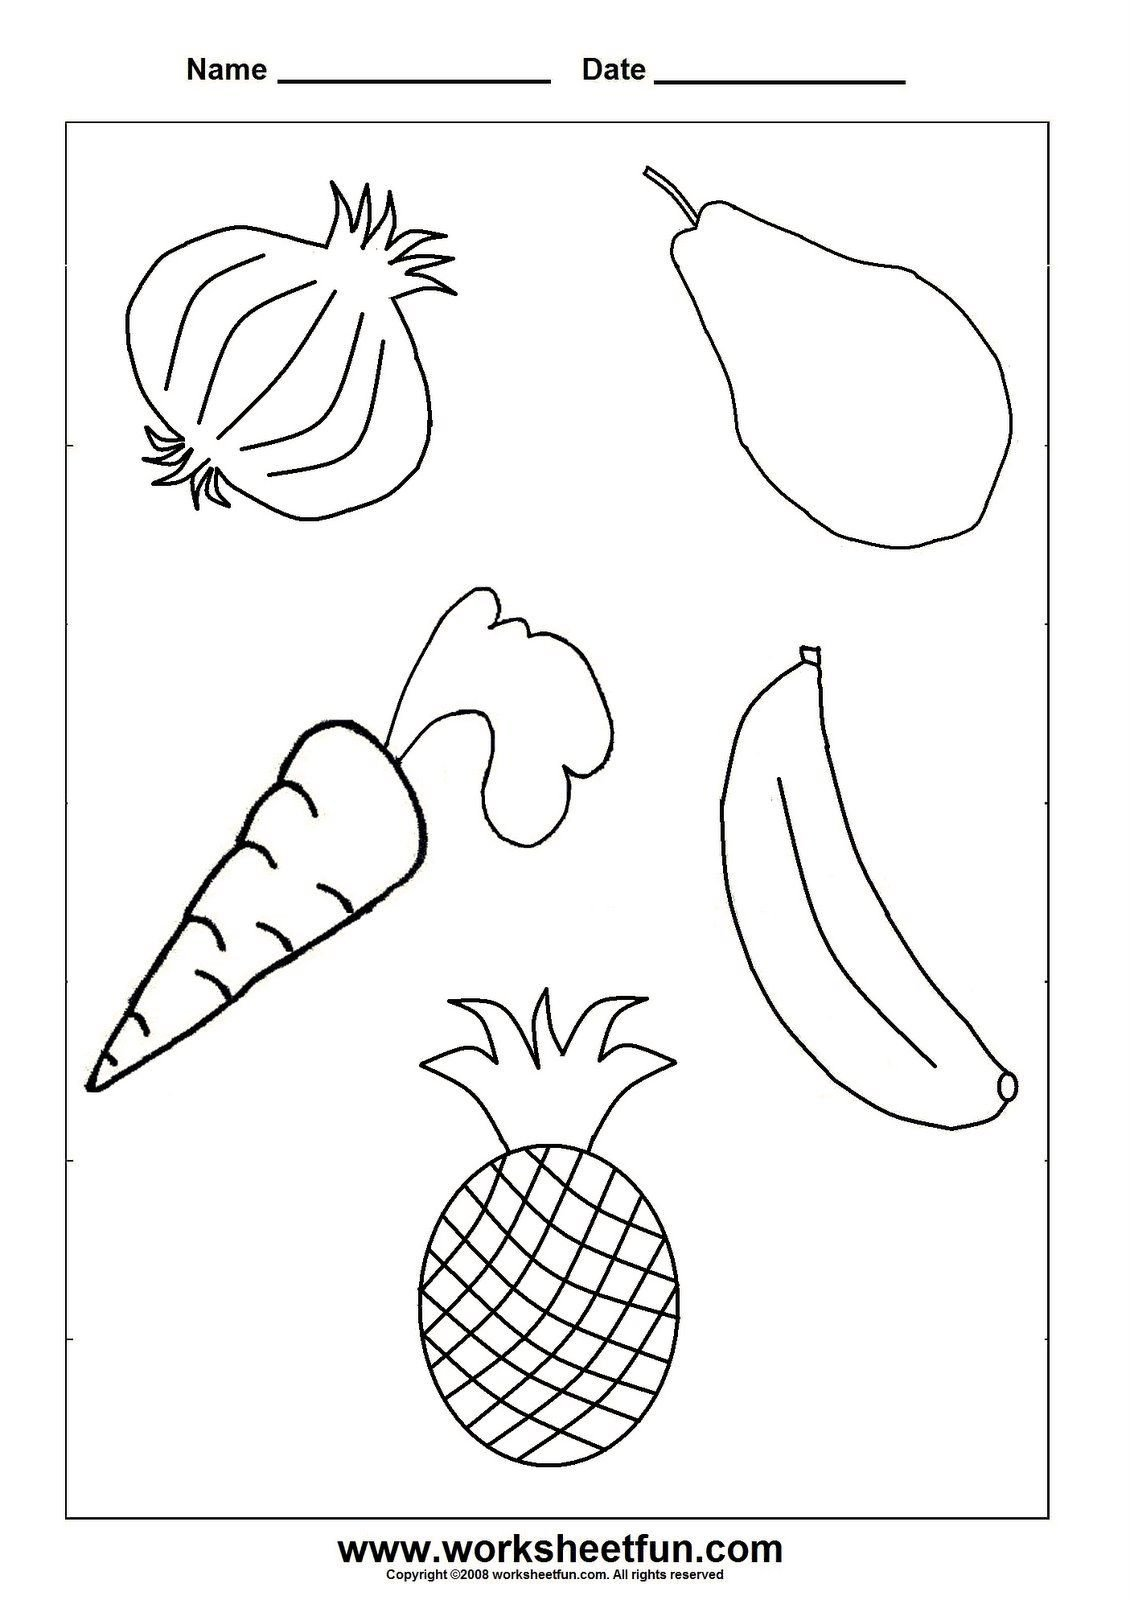 Vegetable Worksheets for Preschool Worksheetfun Free Printable Worksheets